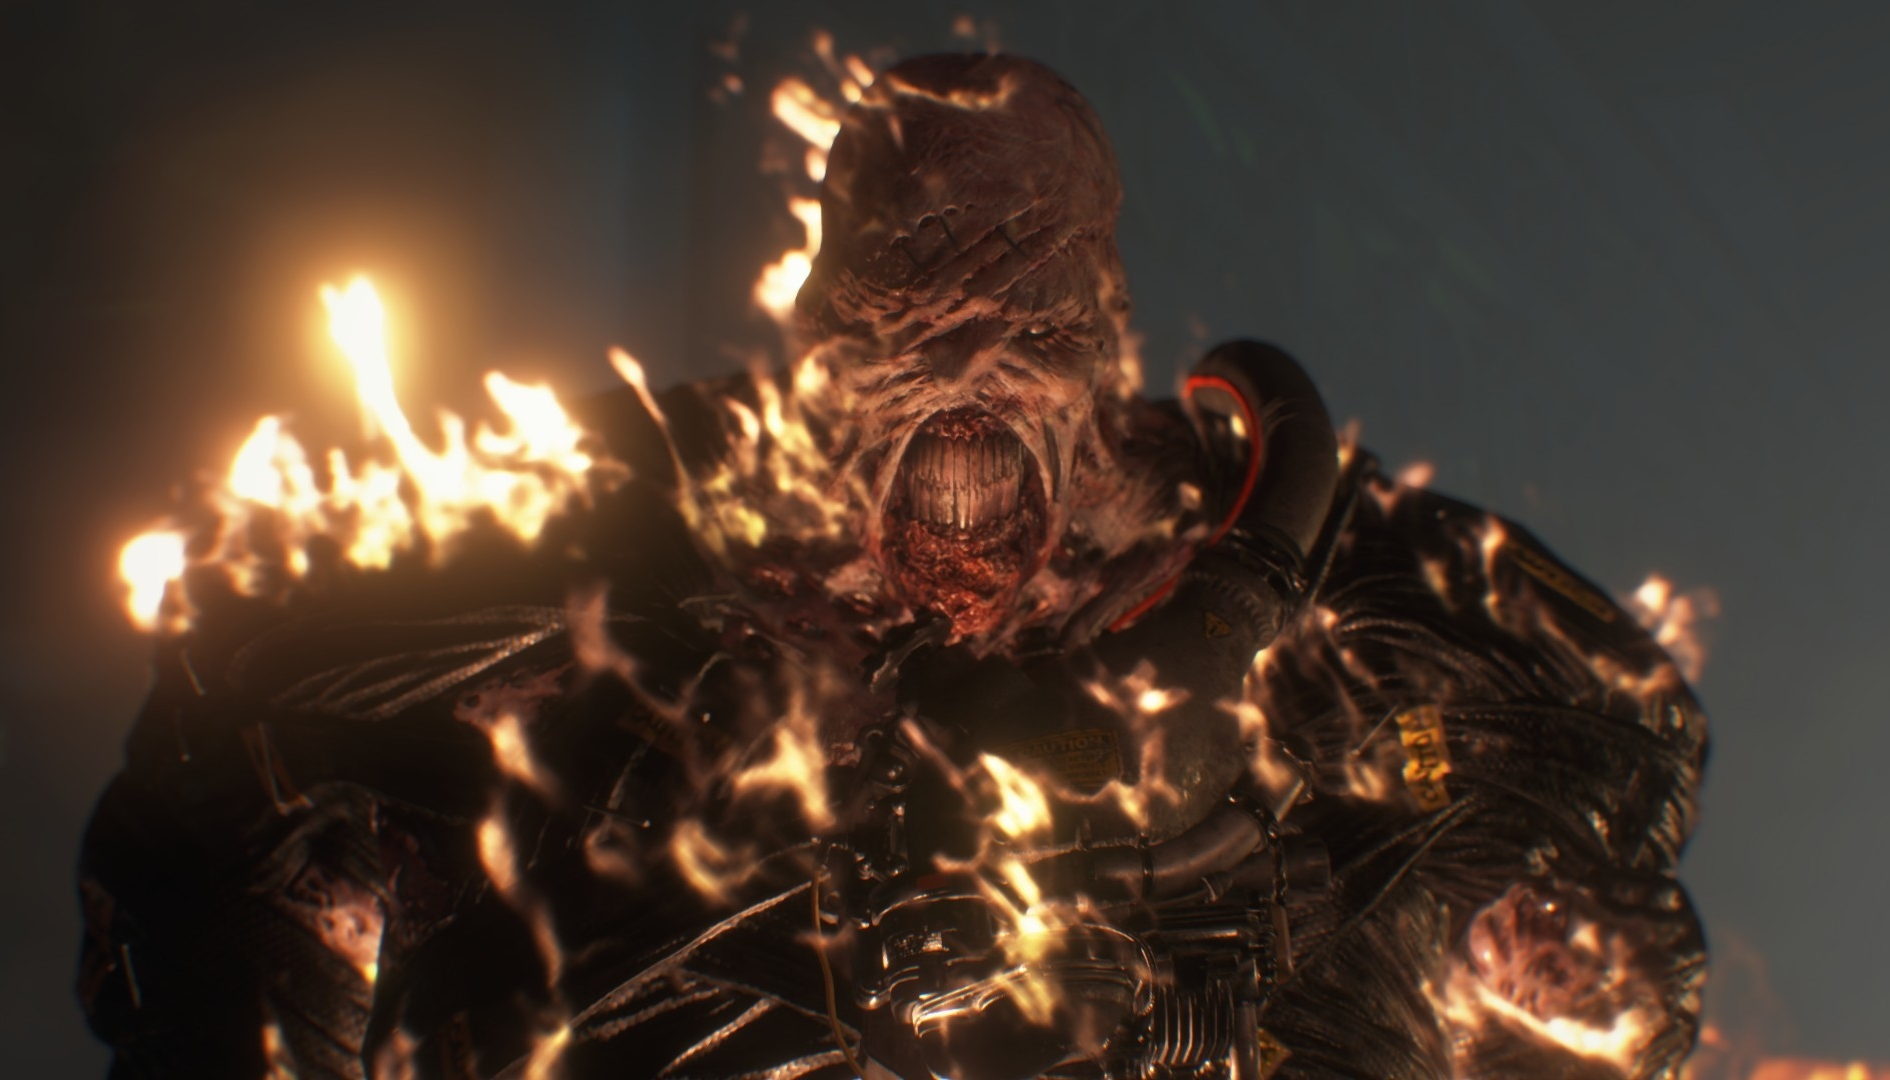 Resident Evil 3 Remake: Nemesis si mostra nel nuovo trailer